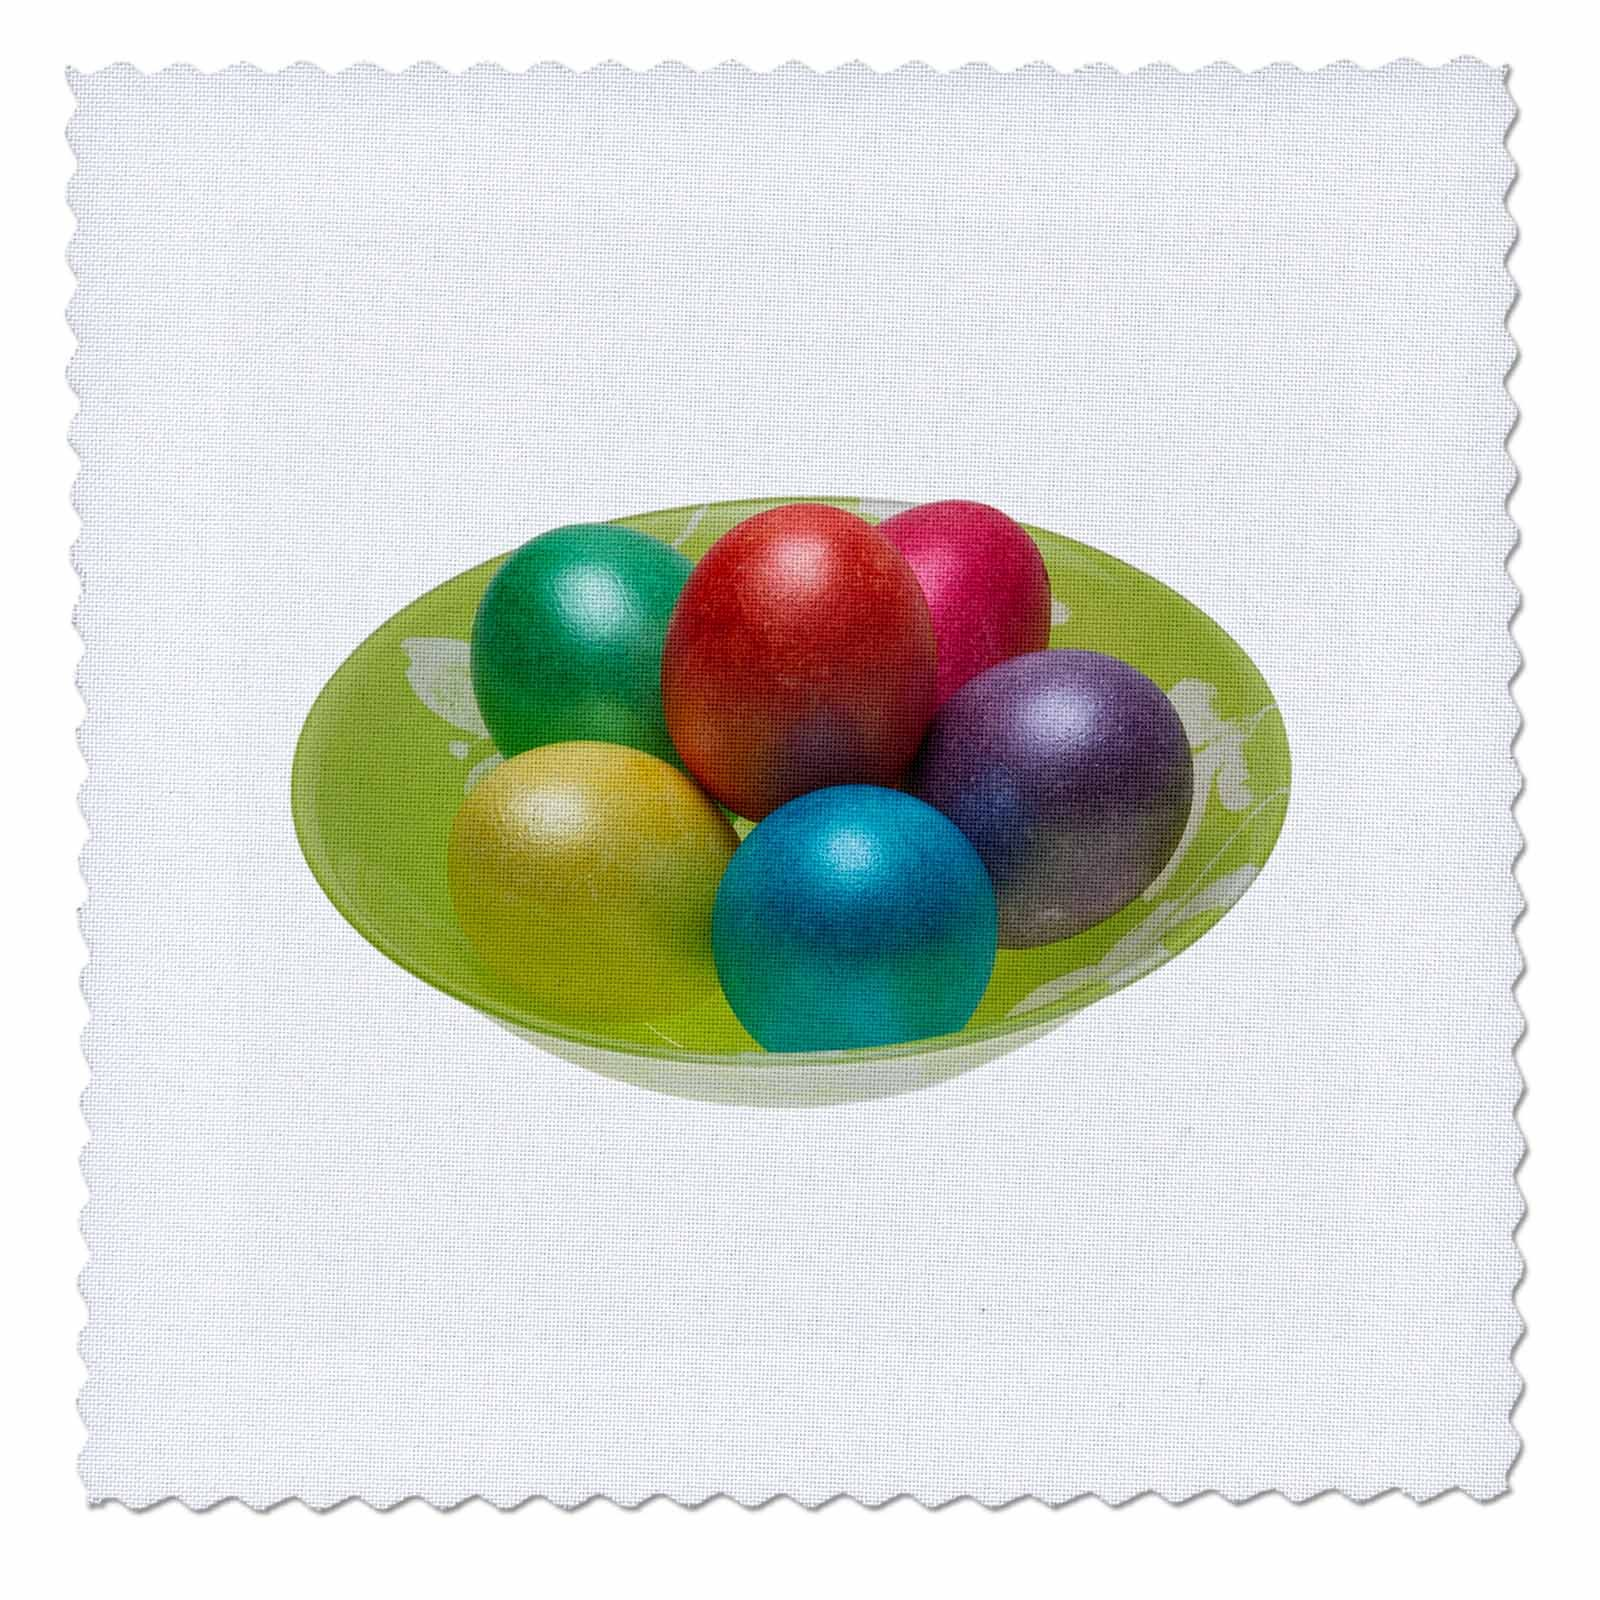 3dRose Alexis Photography - Easter - Easter eggs on a plate - 14x14 inch quilt square (qs_265481_5)